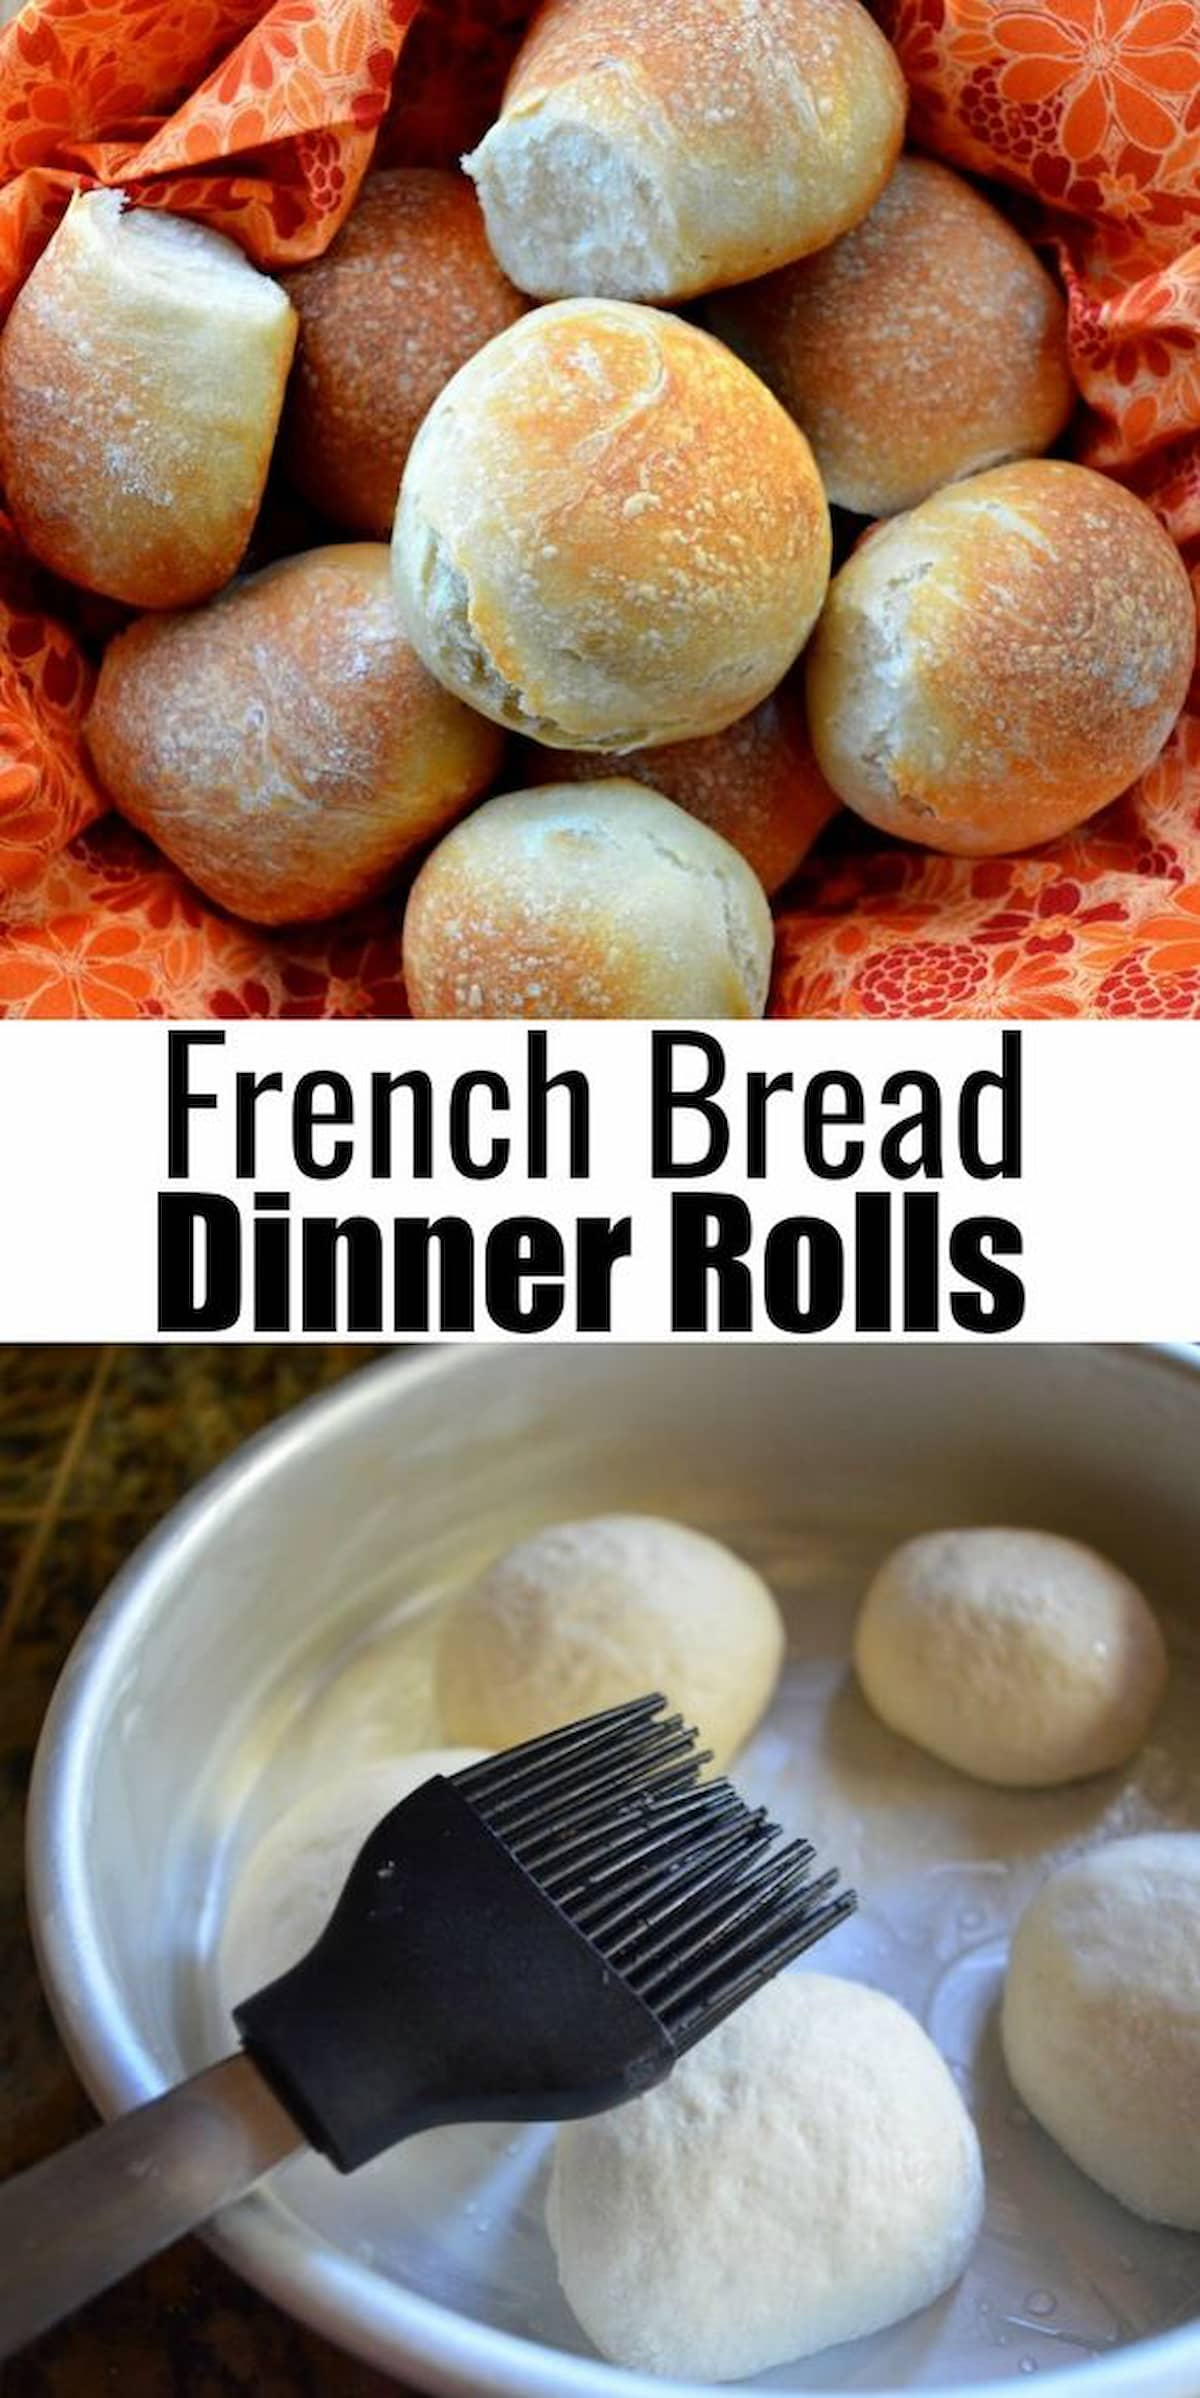 French Bread Dinner Rolls top photo is a basket lined with a orange flower print cloth full of Baked French Bread Dinner Rolls and the bottom photo is of unbaked French Bread Dinner Rolls being sprinkled with water. Black text between the two photos French Bread Dinner Rolls.